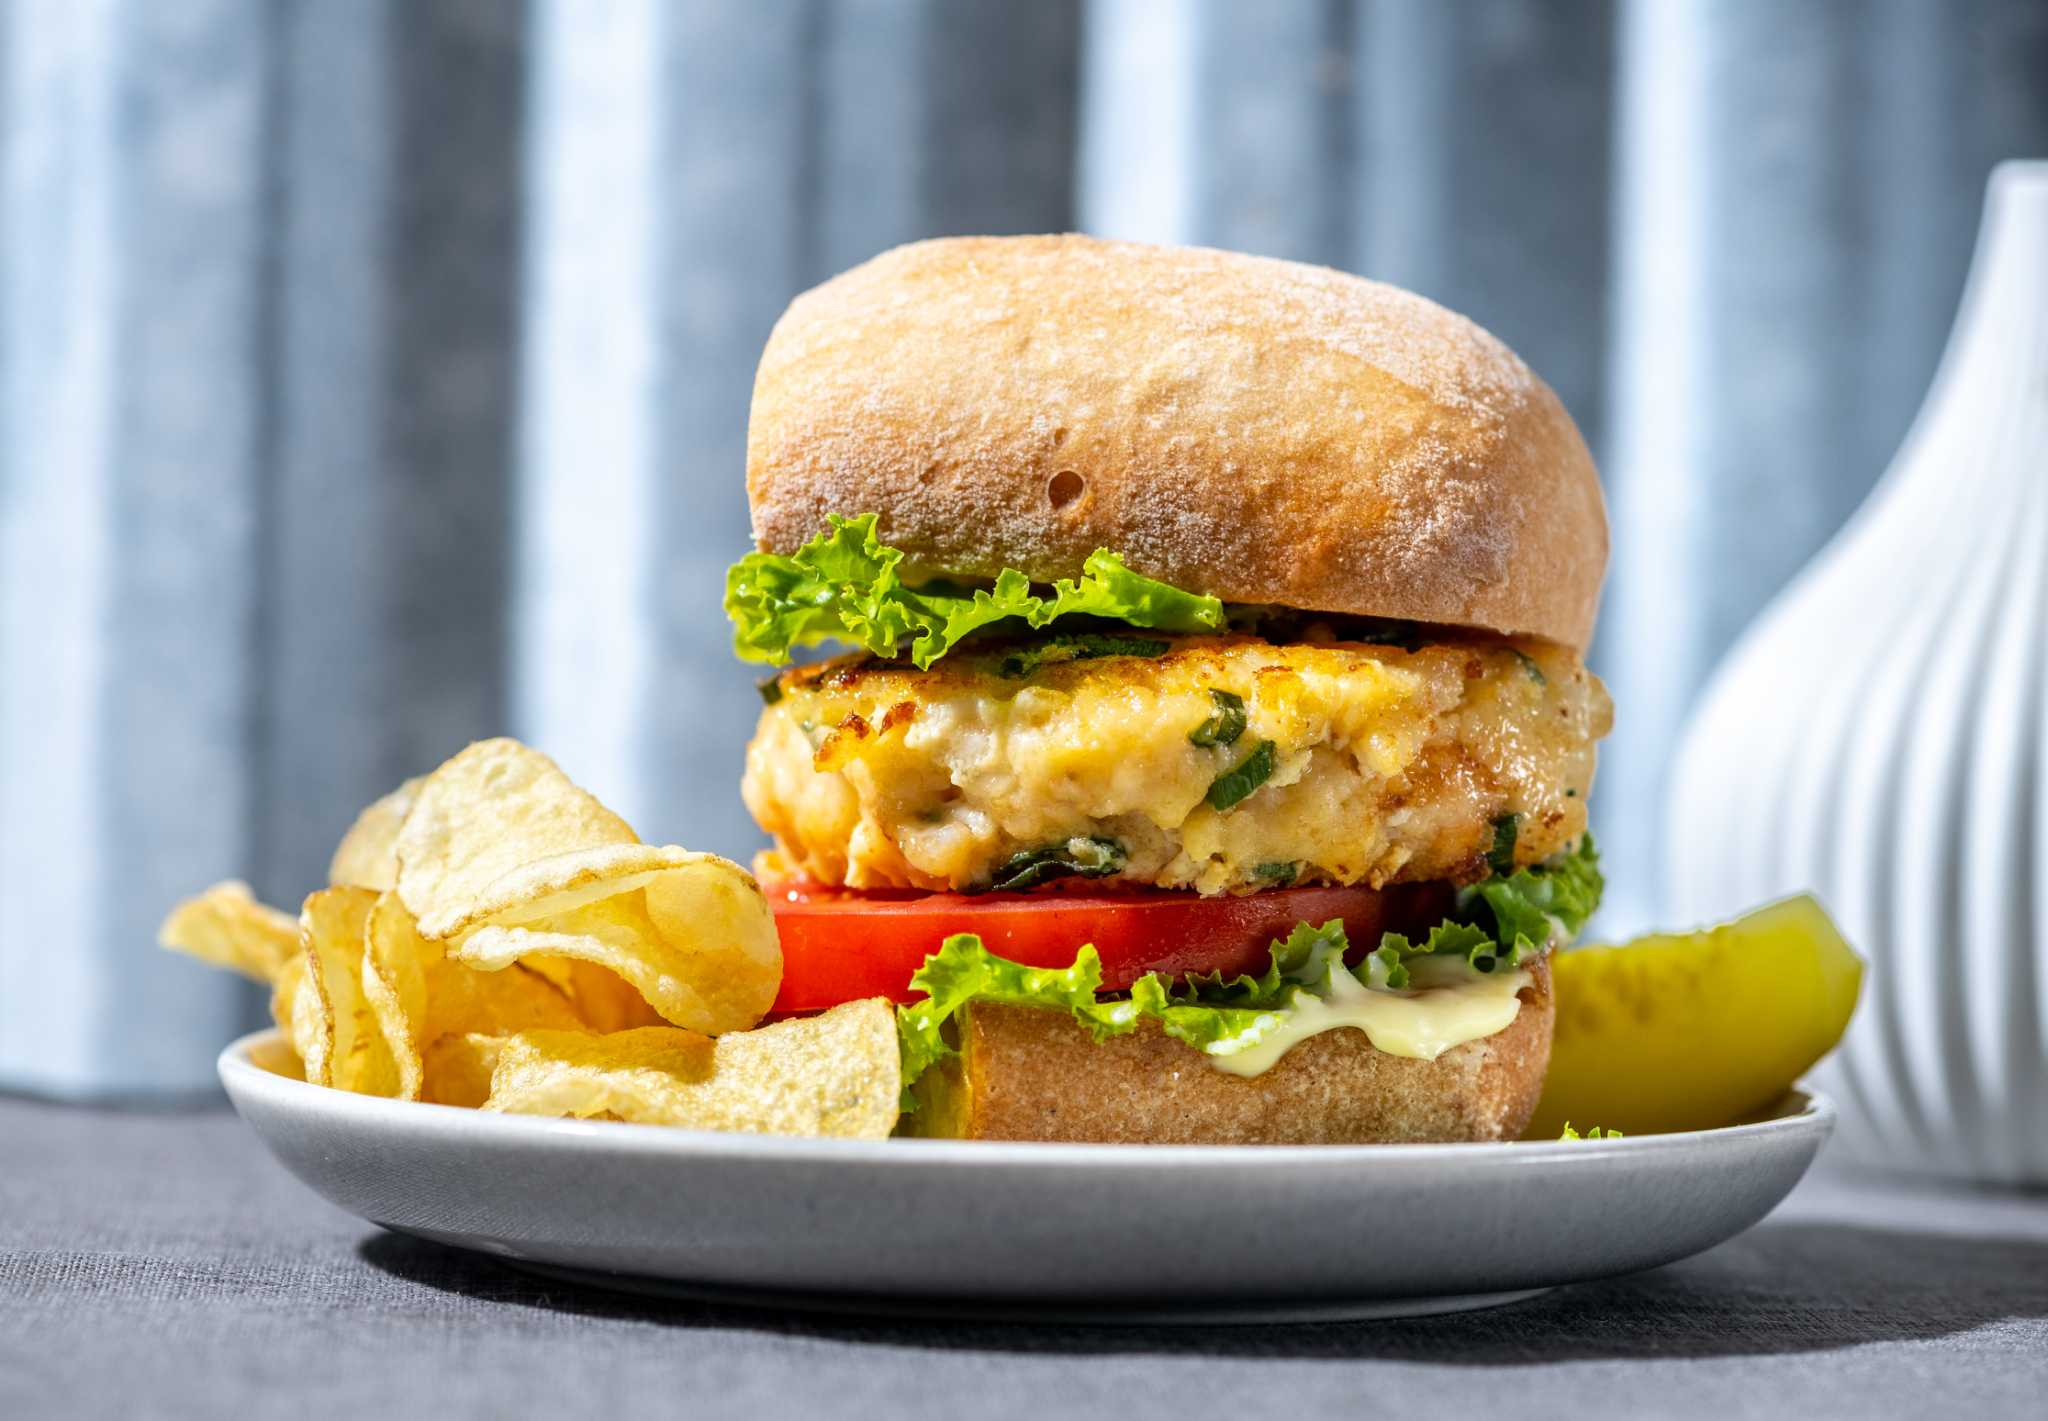 Bacon and shrimp prove to be a mighty pair in these stuffed burgers